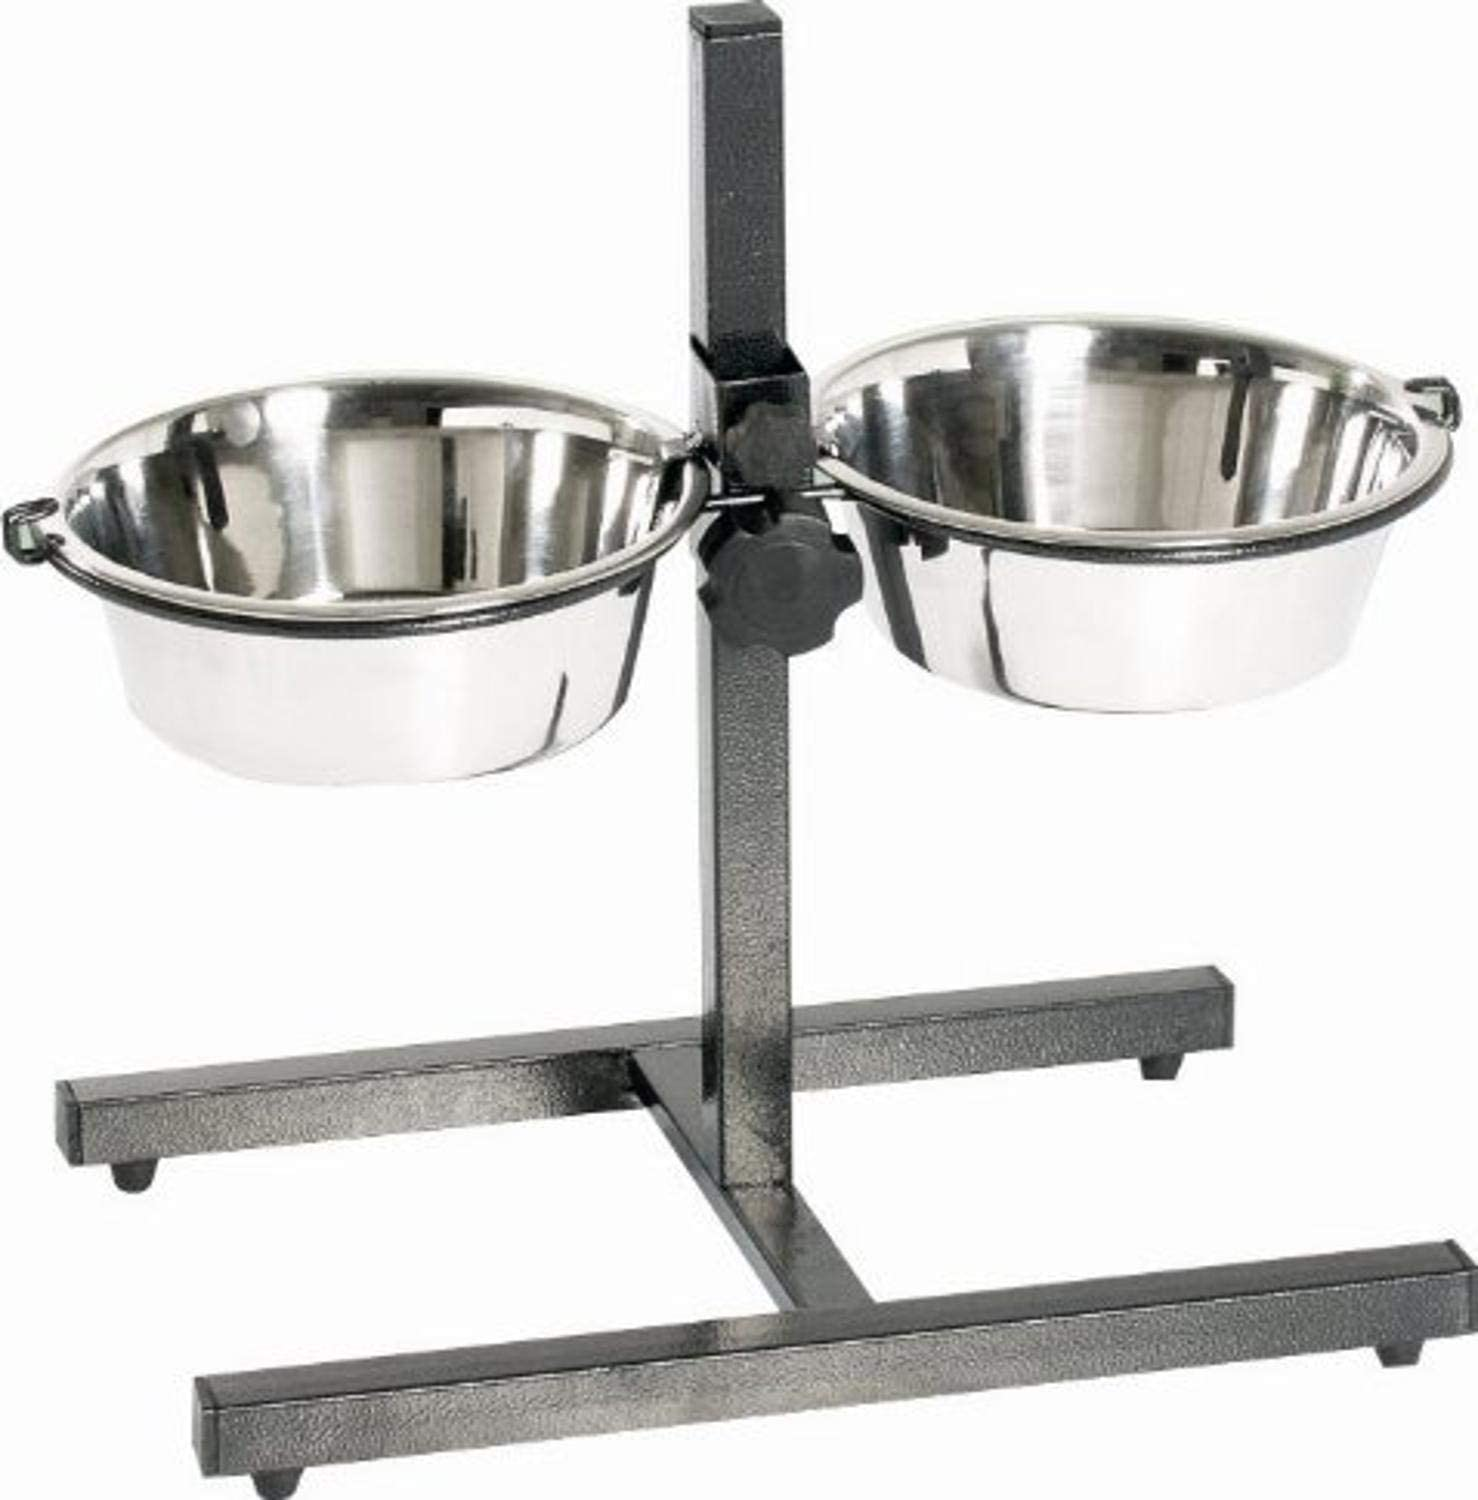 Indipets Adjustable Double Diner with 2 Stainless Steel Dog Bowls - Heavy Base Adjusts to Fit Your Pet's Height